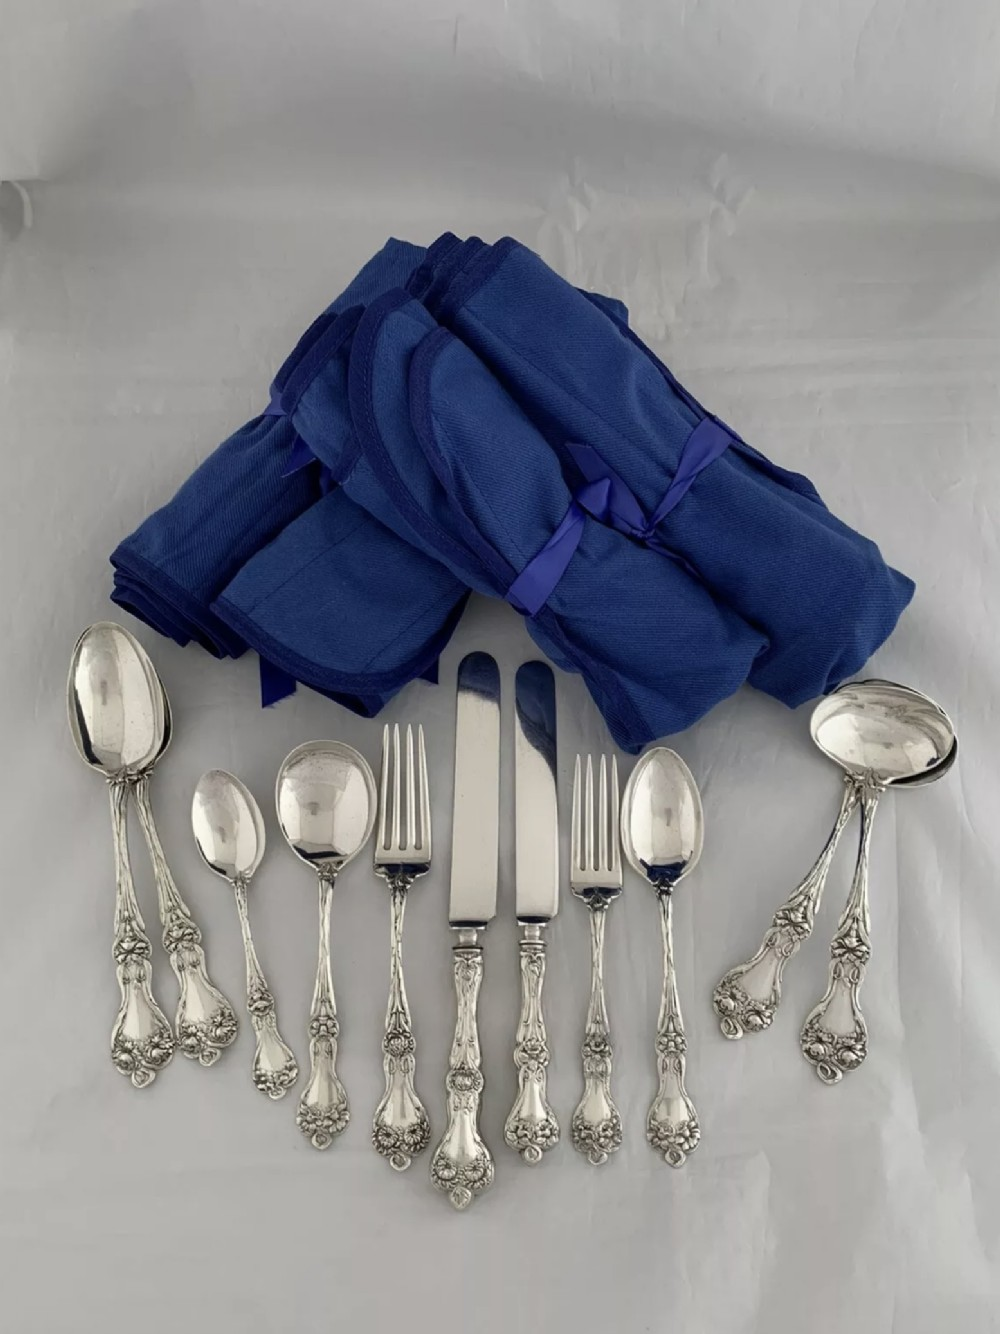 sterling silver dinner service for 6 majestic pattern by alvin usa 46 piece 1960s